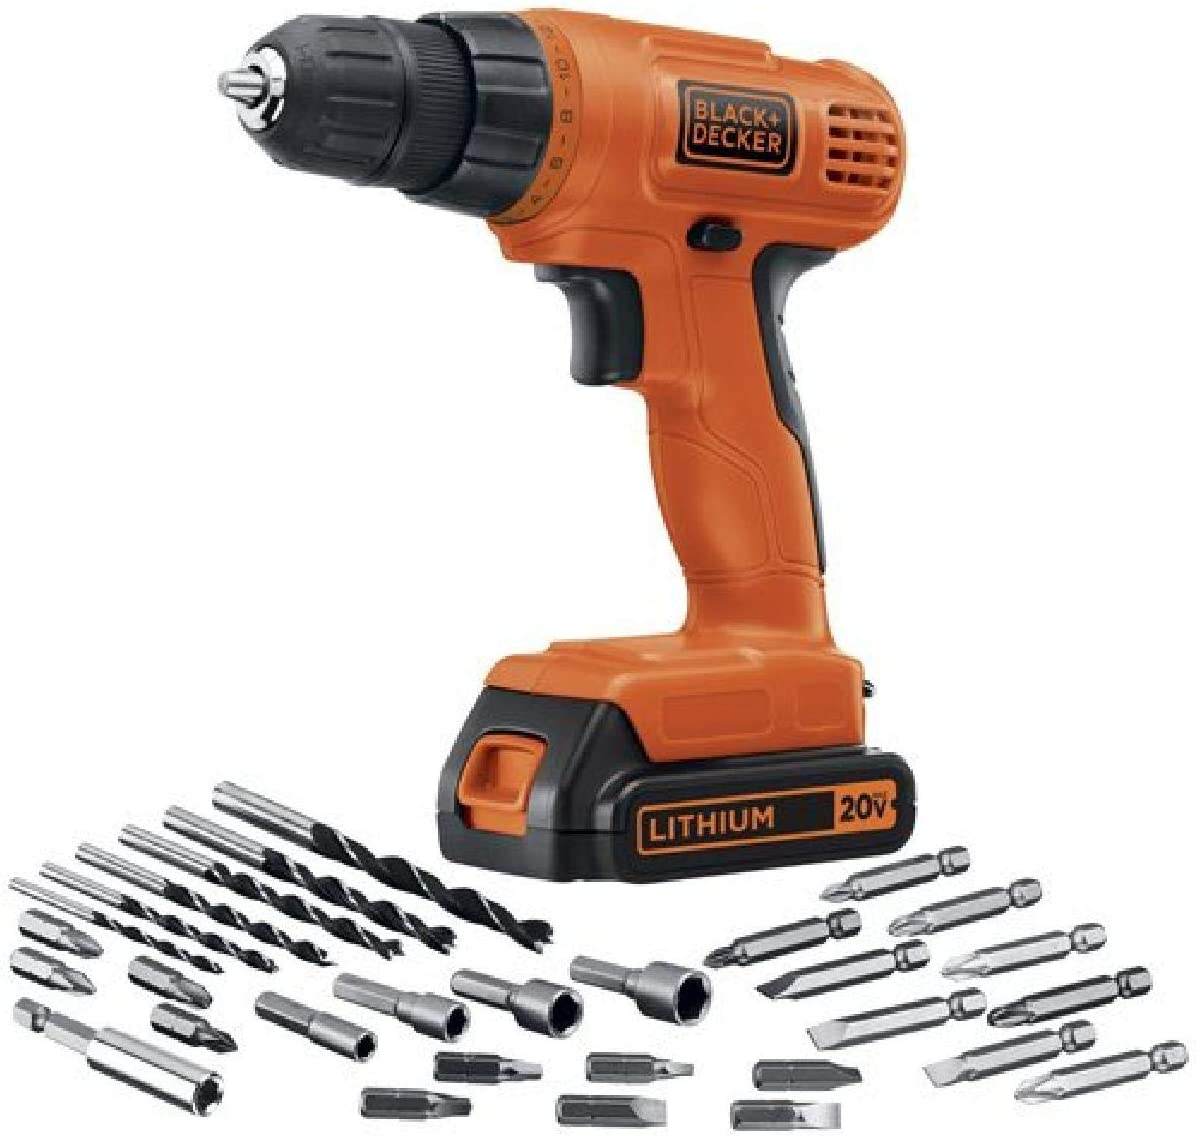 BLACK+DECKER 20V MAX Cordless Drill / Driver with 30-Piece Accessories (LD120VA): Home Improvement